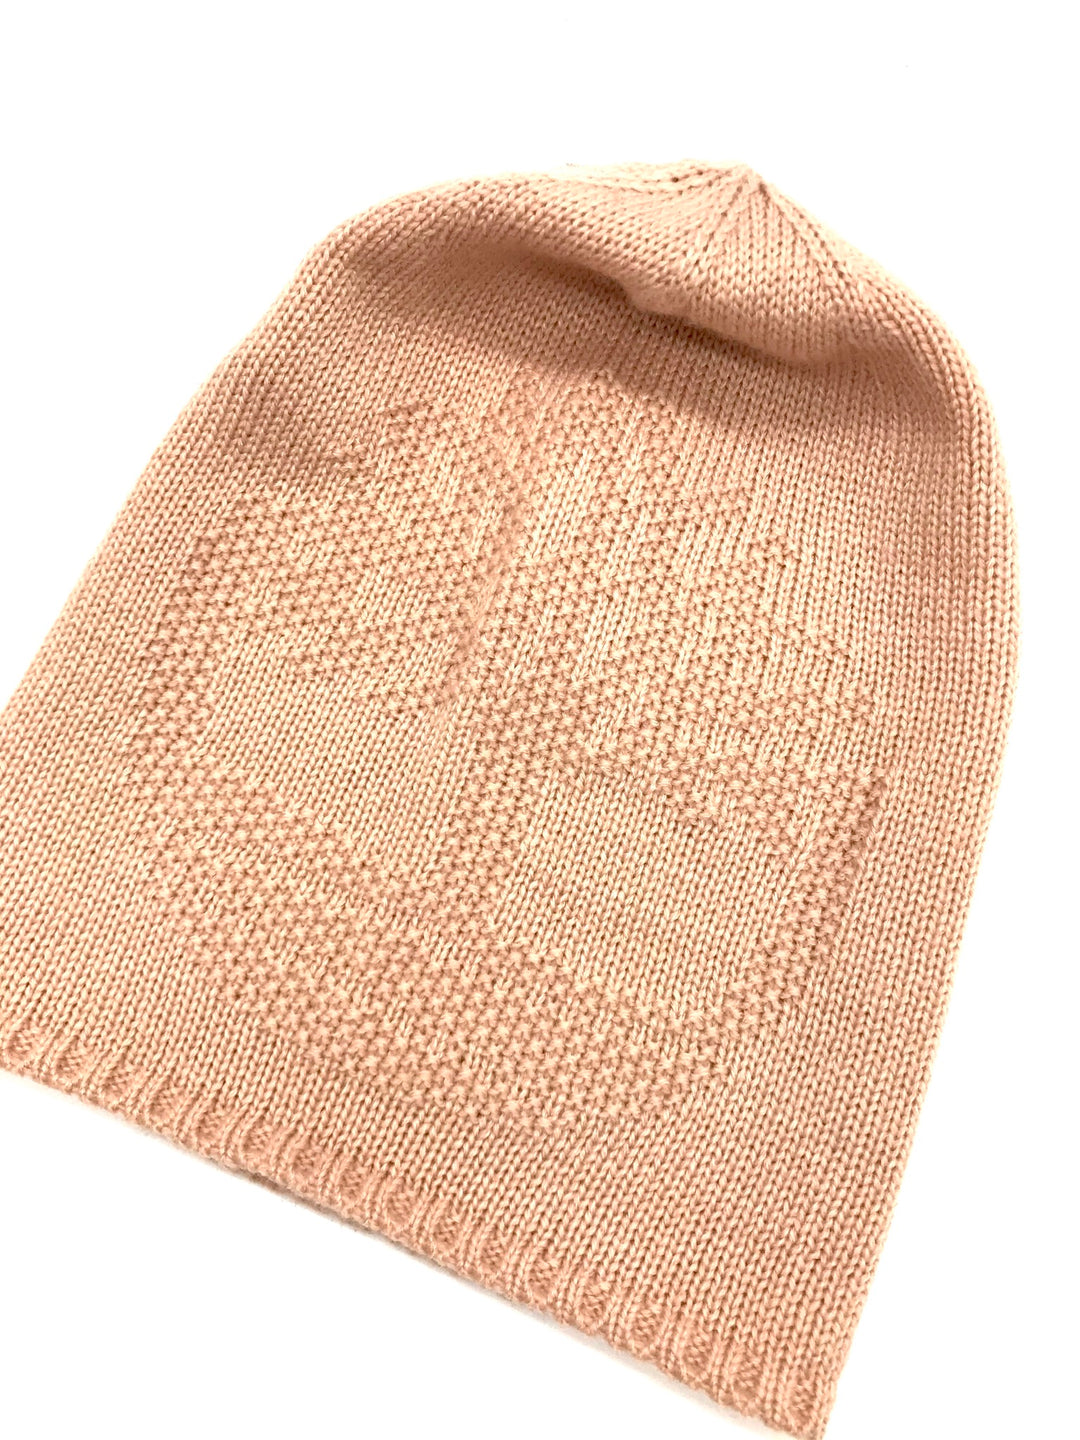 Primary Photo - BRAND: TIMBERLAND <BR>STYLE: BONNET<BR>COLOR: LIGHT PINK <BR>SKU: 262-26275-58803<BR>AS IS